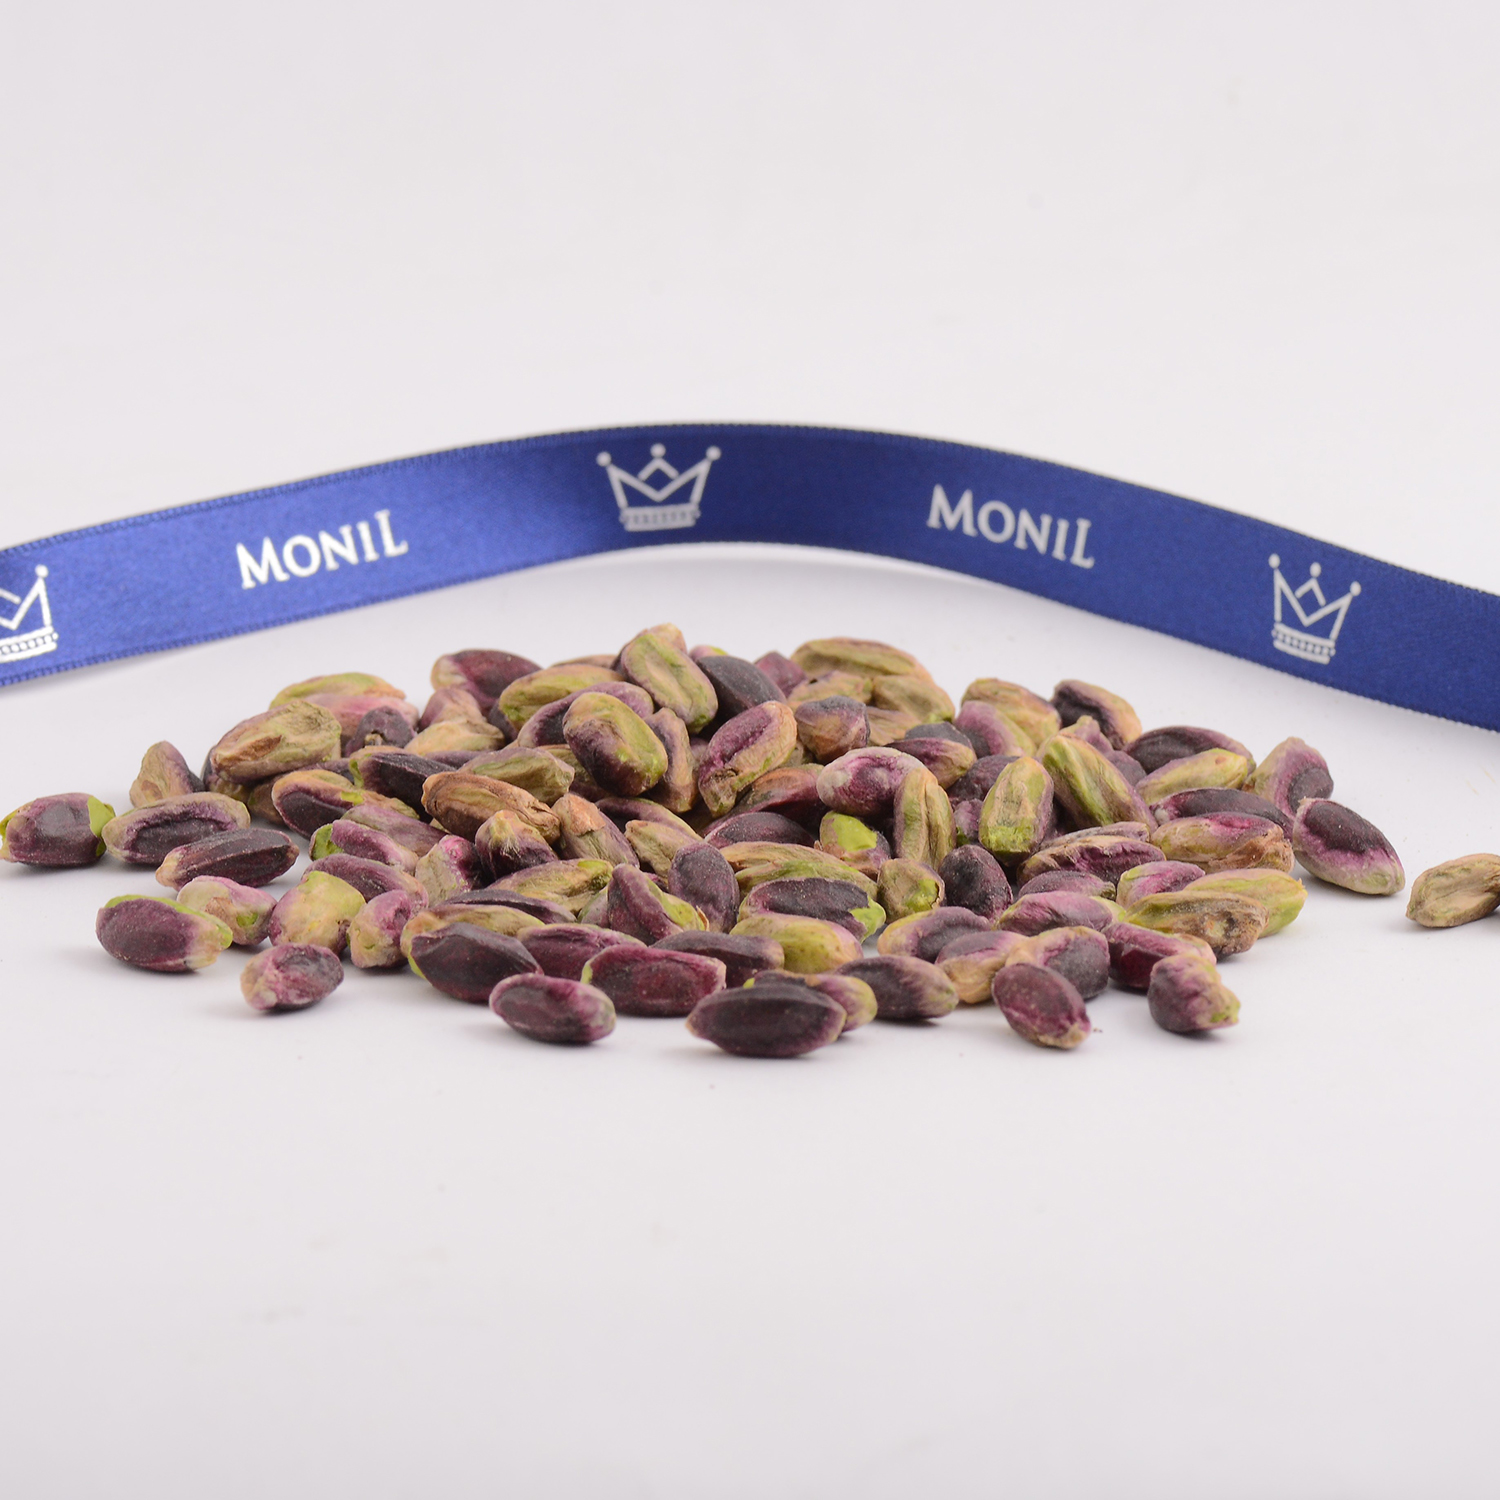 PDO Bronte pistachio MONIL kernel, nut, snack food from Italy